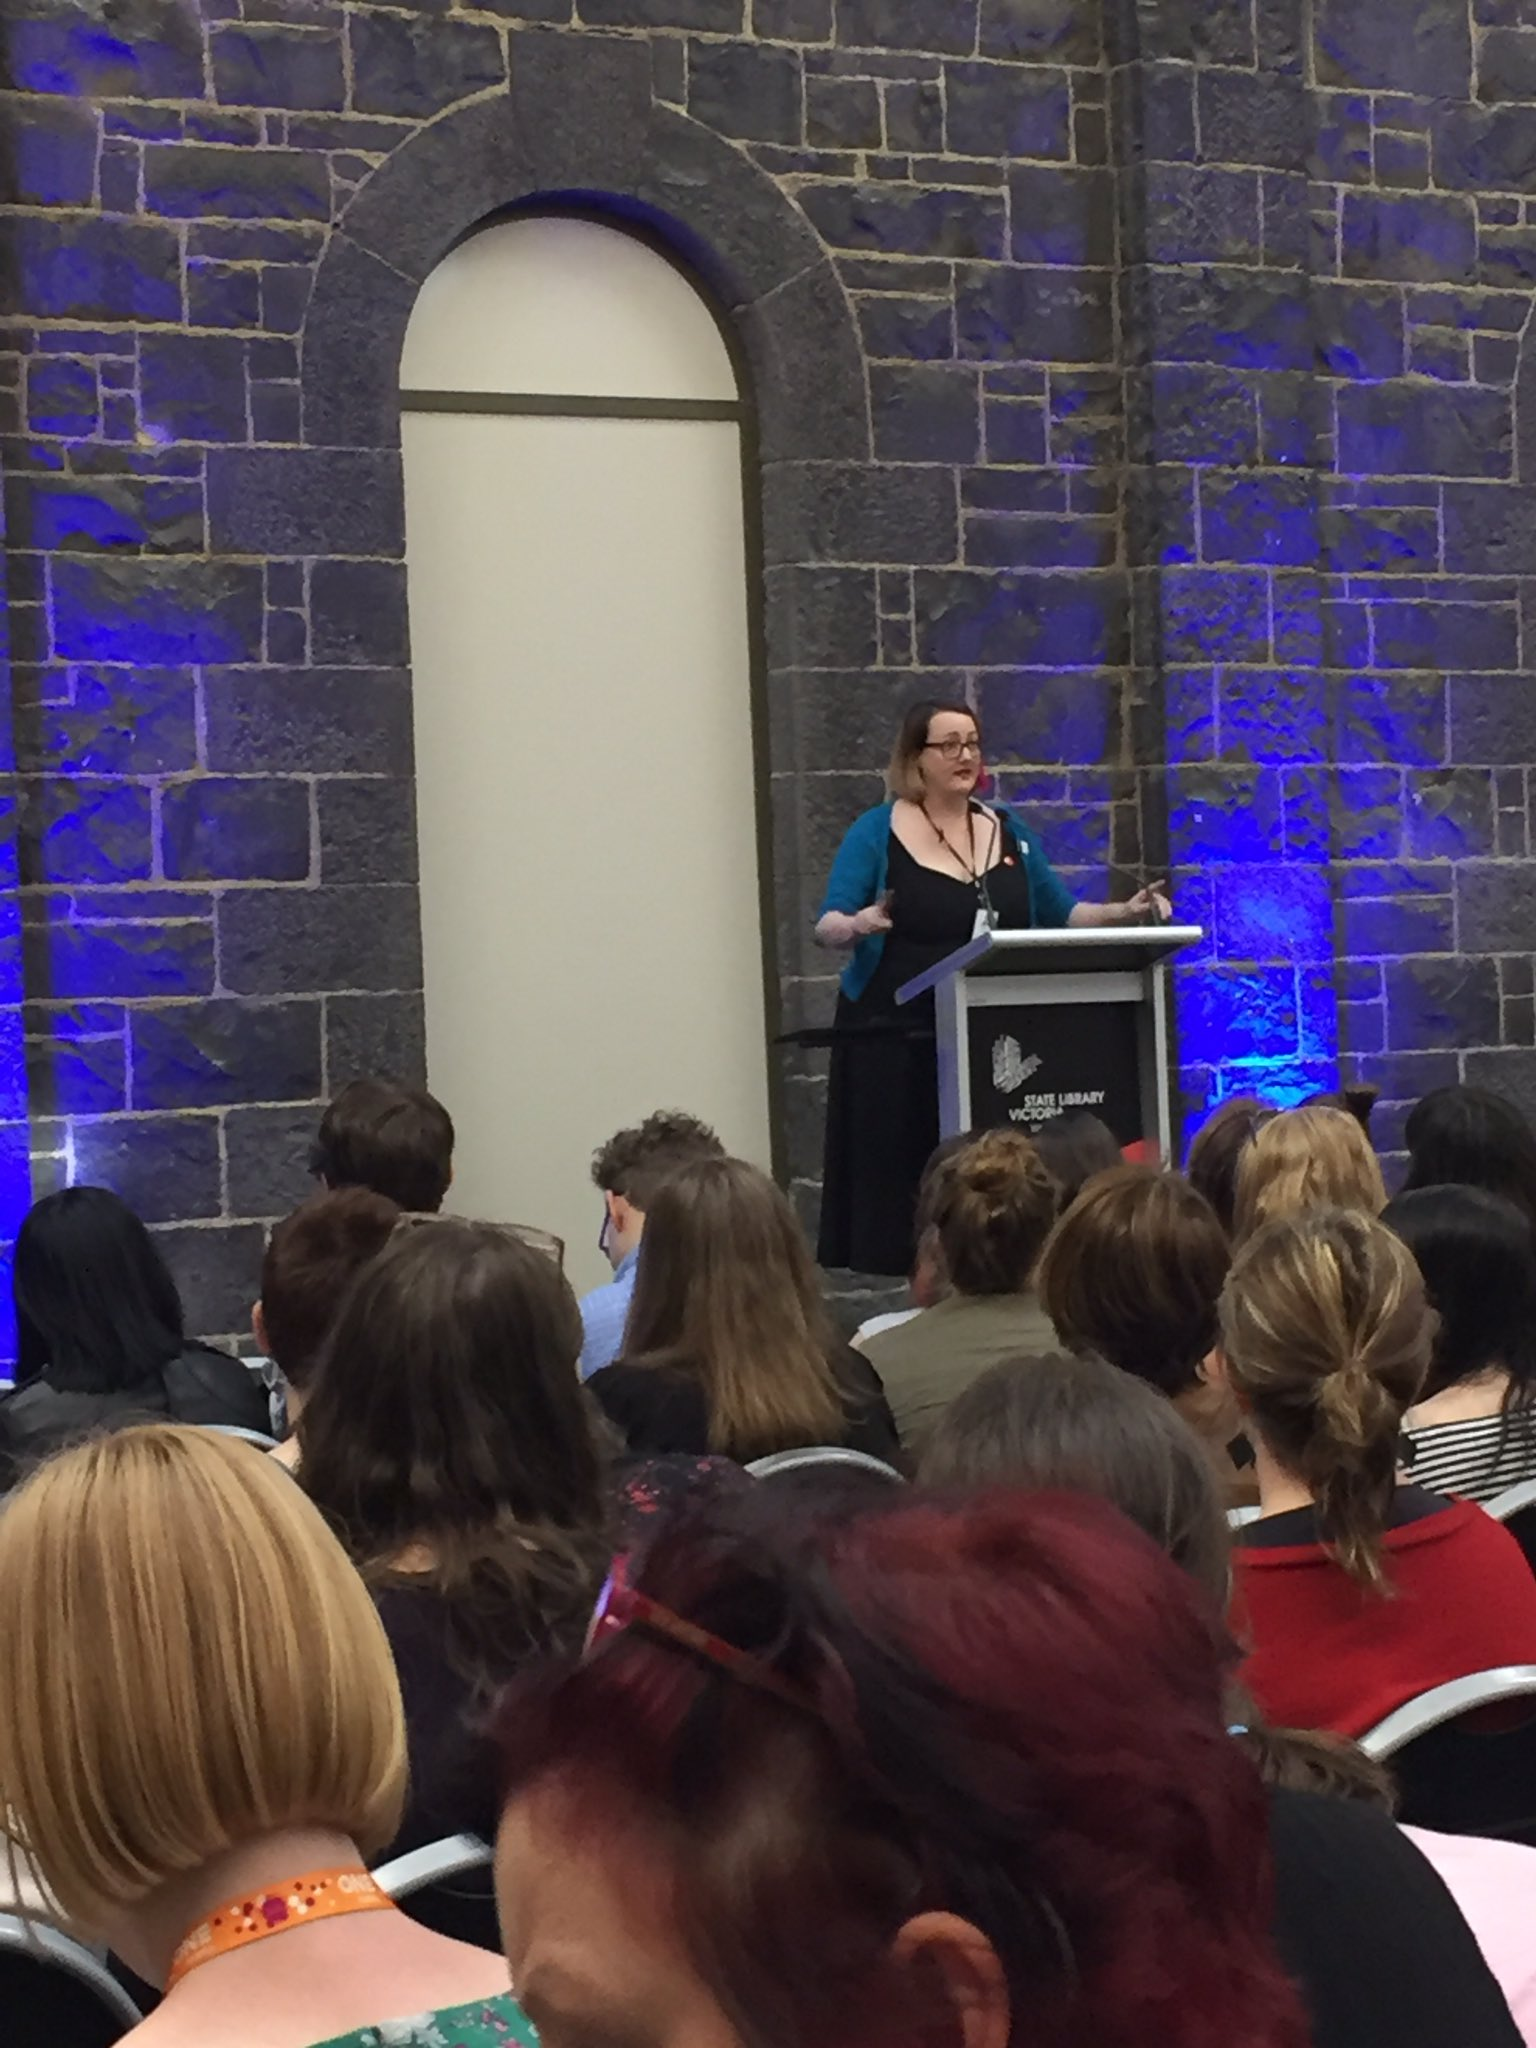 Getting ready to hear about next year's exciting new YA releases at the @CentreYouthLit's #YAshowcase https://t.co/KswtrbzPEx